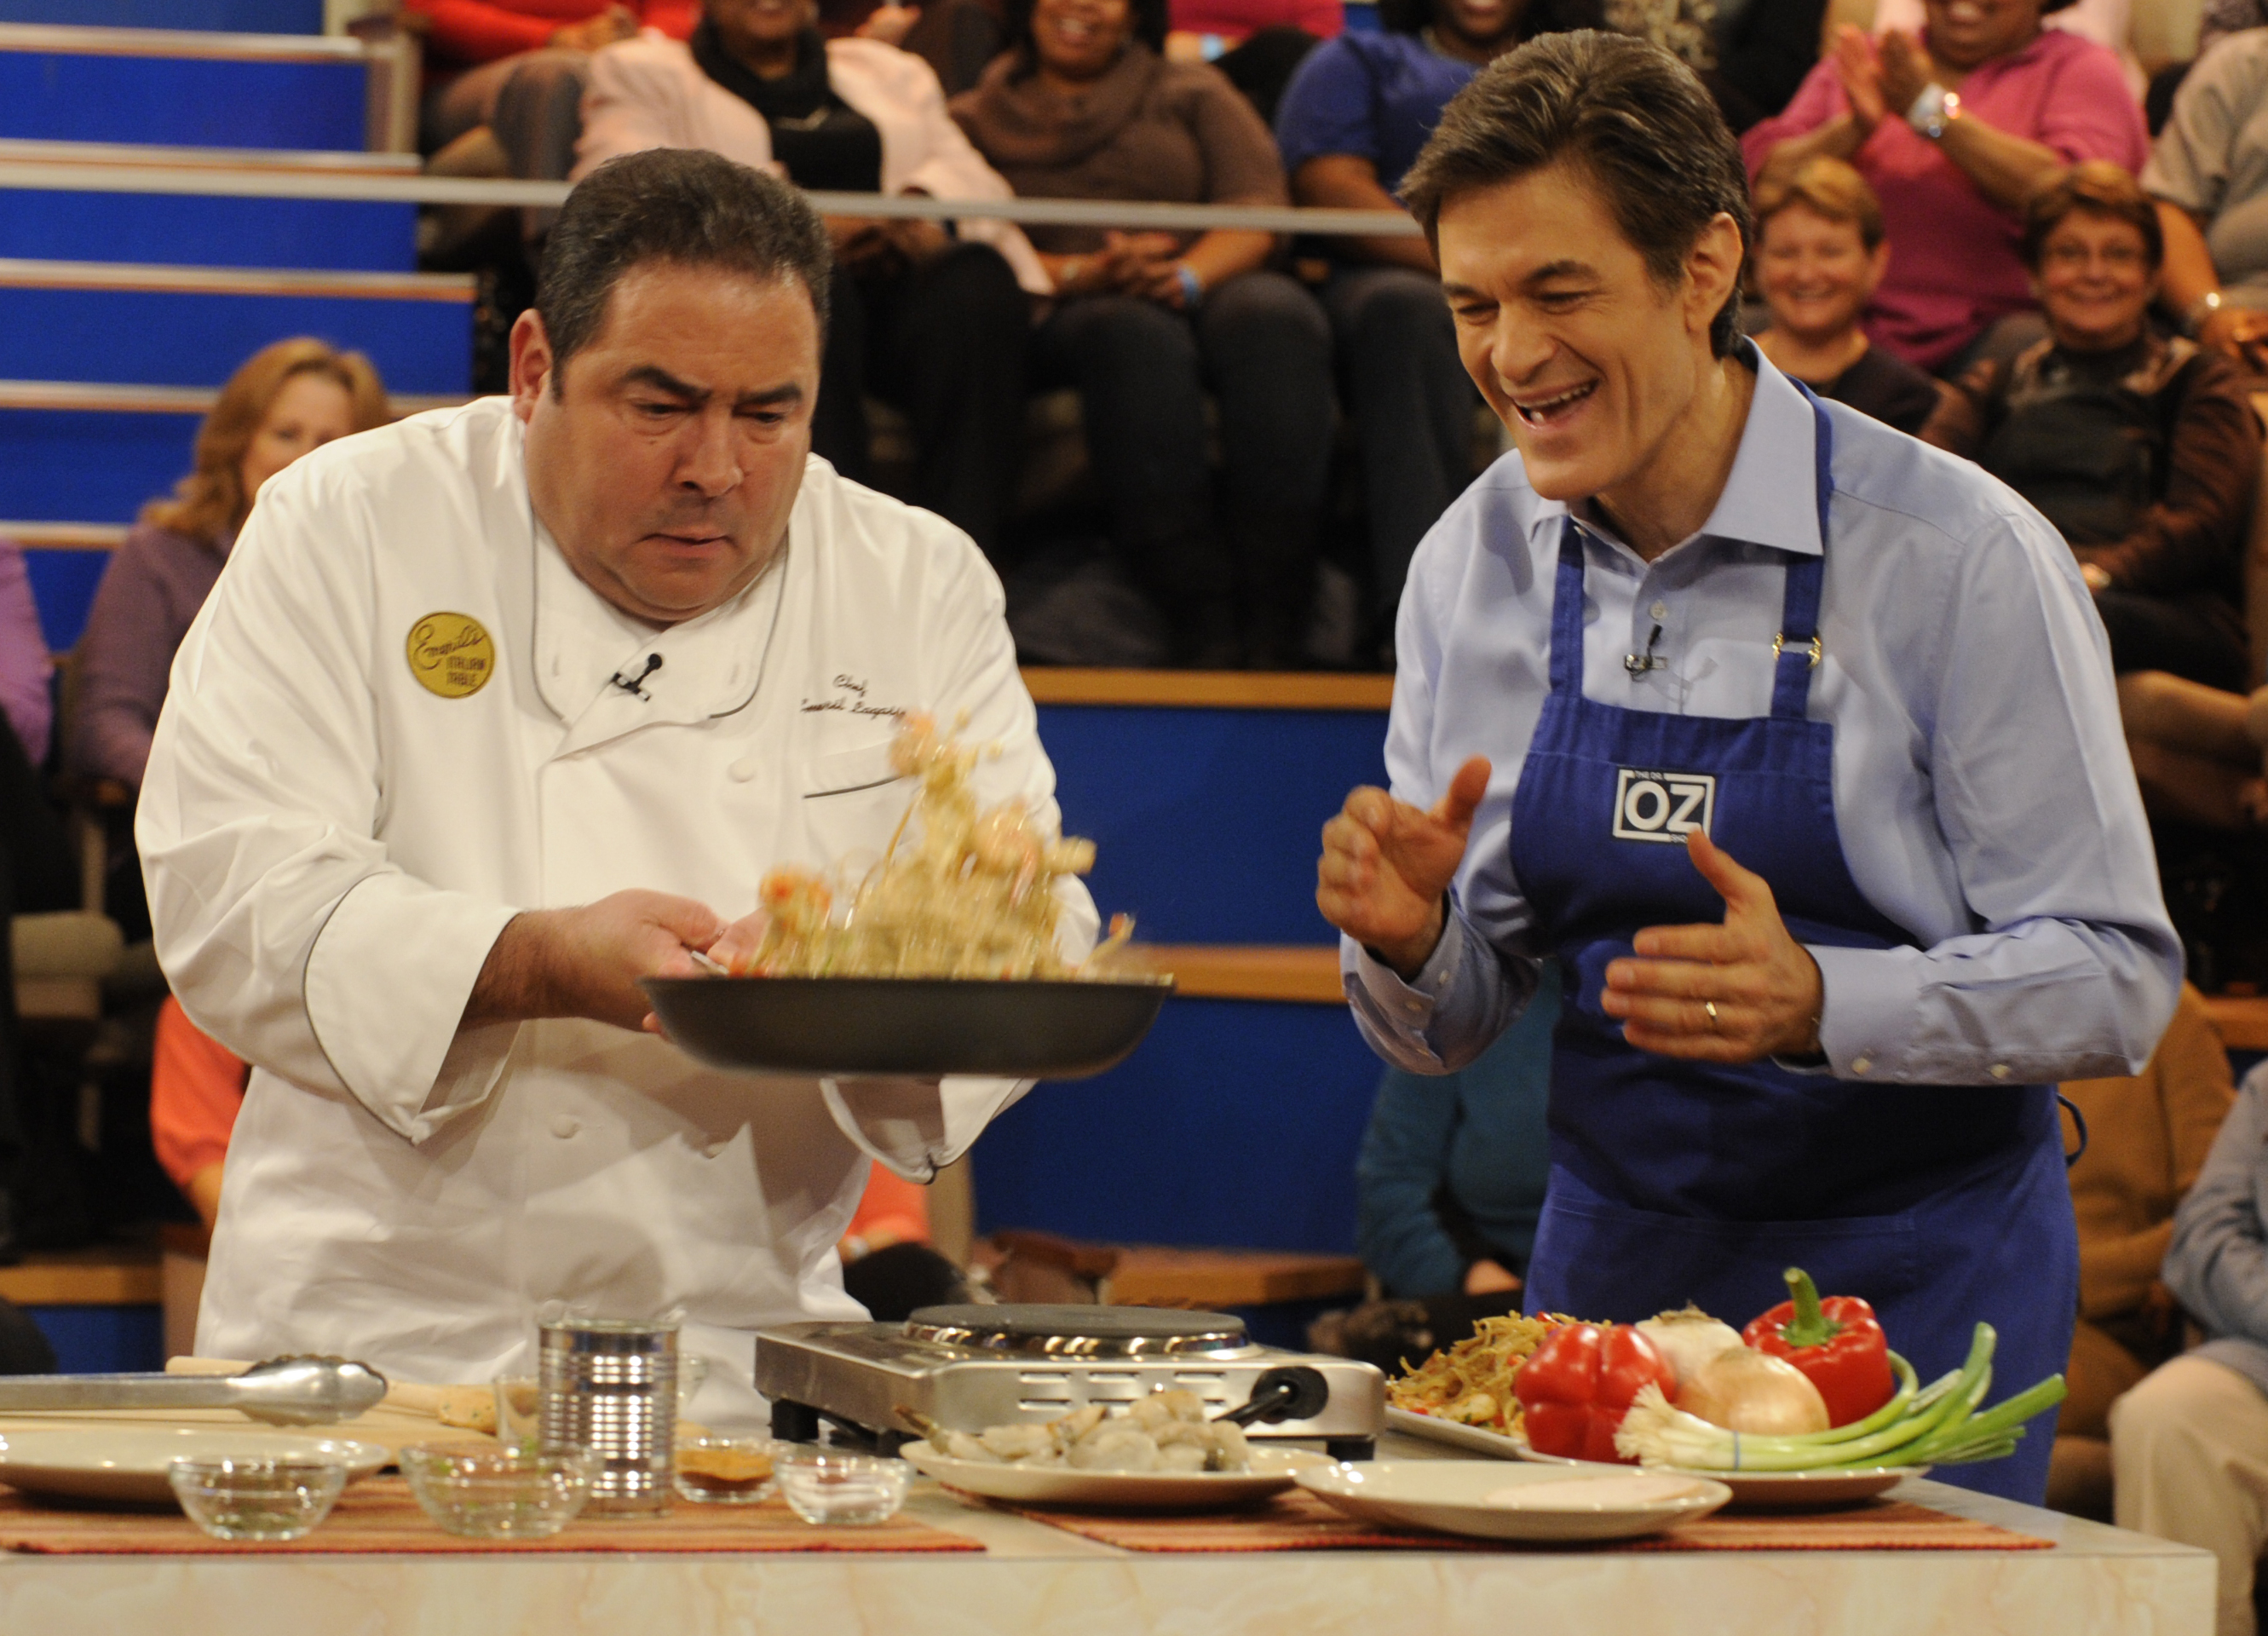 Dr. Oz has been kicking it up a notch this season and winning new viewers.